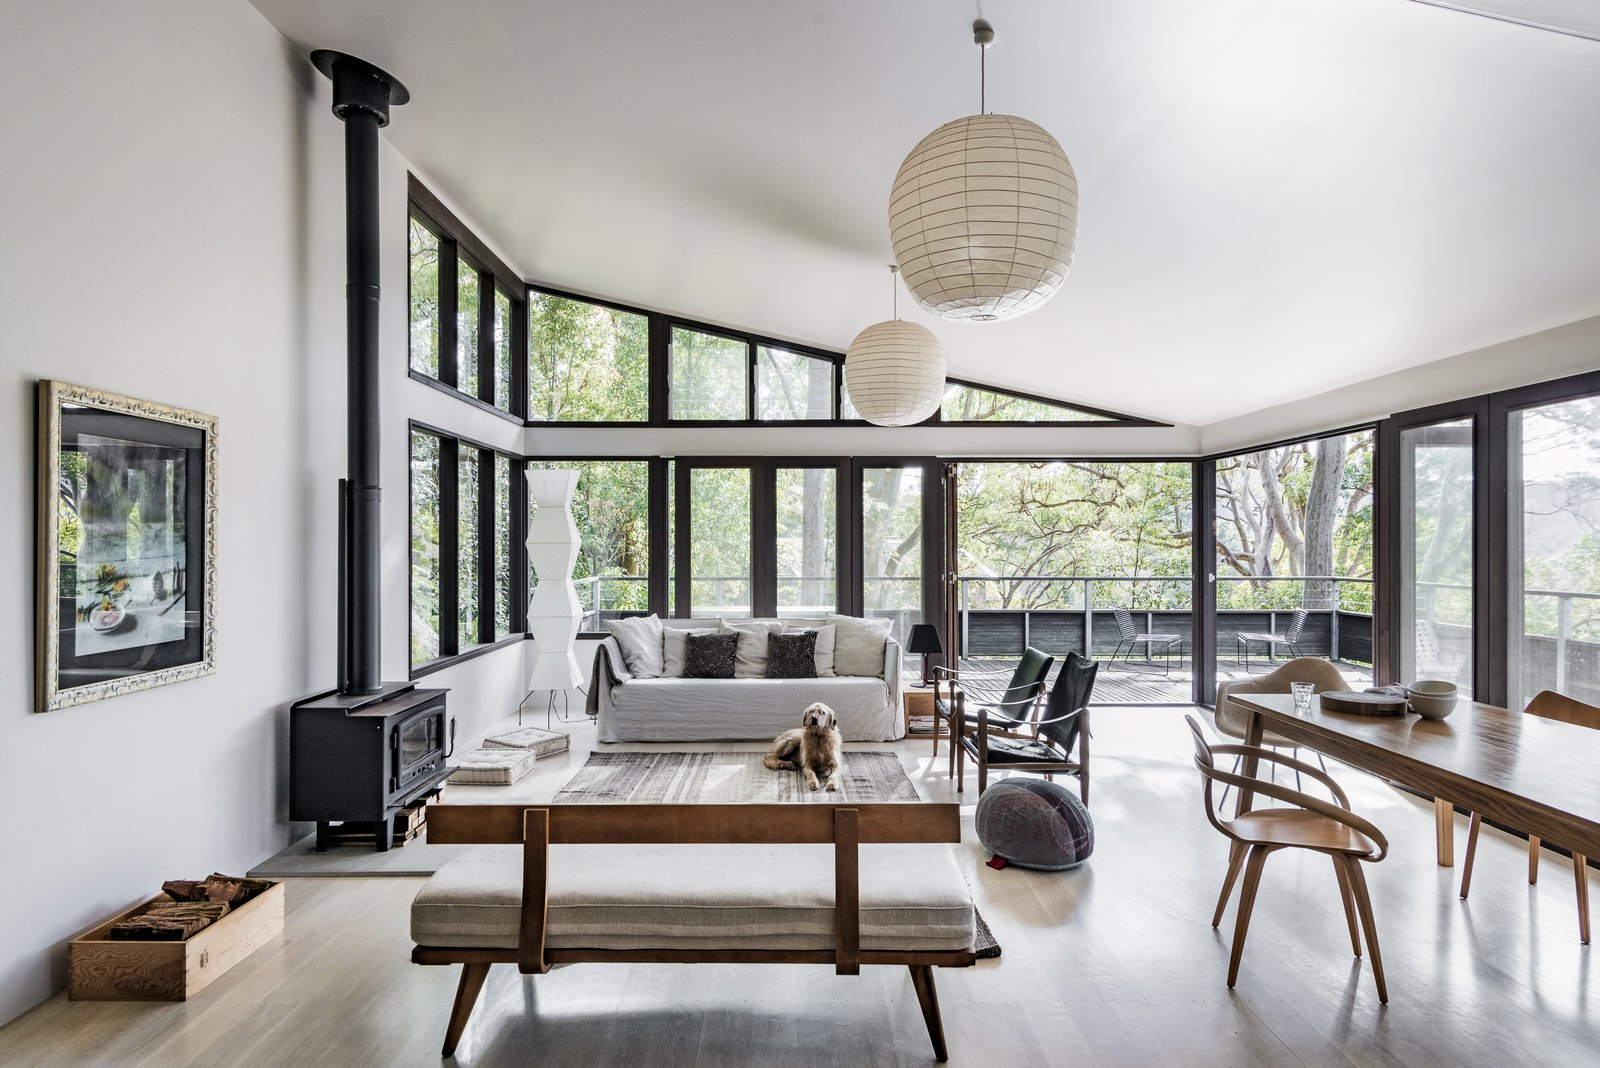 Living Room, Chair, Pendant Lighting, Sofa, Wood Burning Fireplace, Light Hardwood Floor, and Ottomans  Photo 2 of 13 in Stay in a Riverside Vacation Home That Embraces the Australian Bush